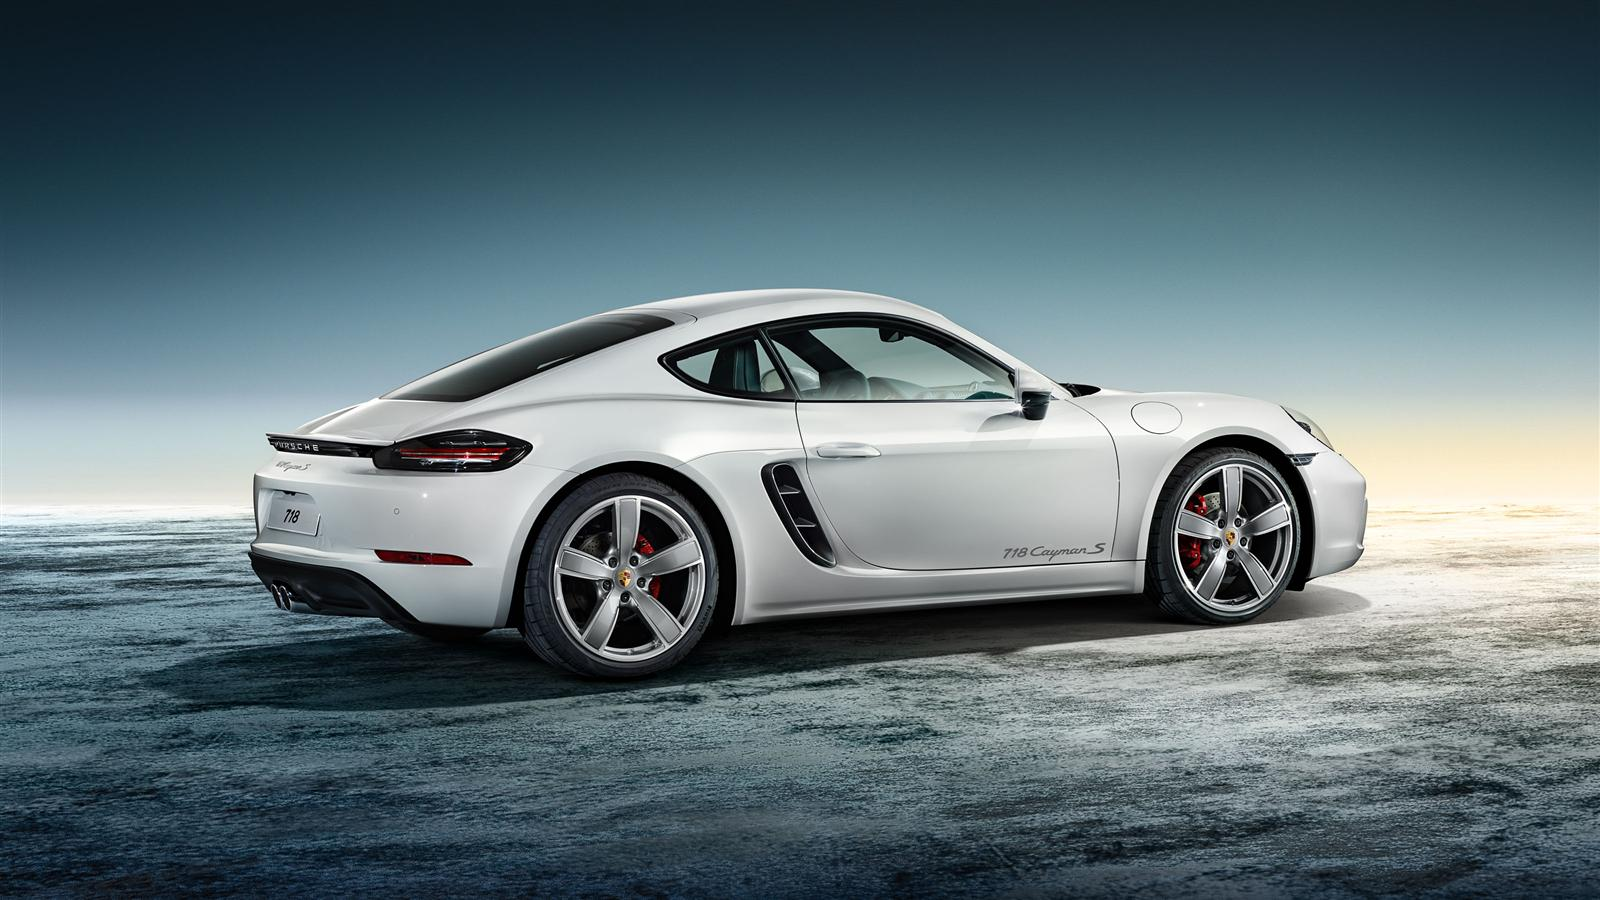 Exclusive 718 Cayman S